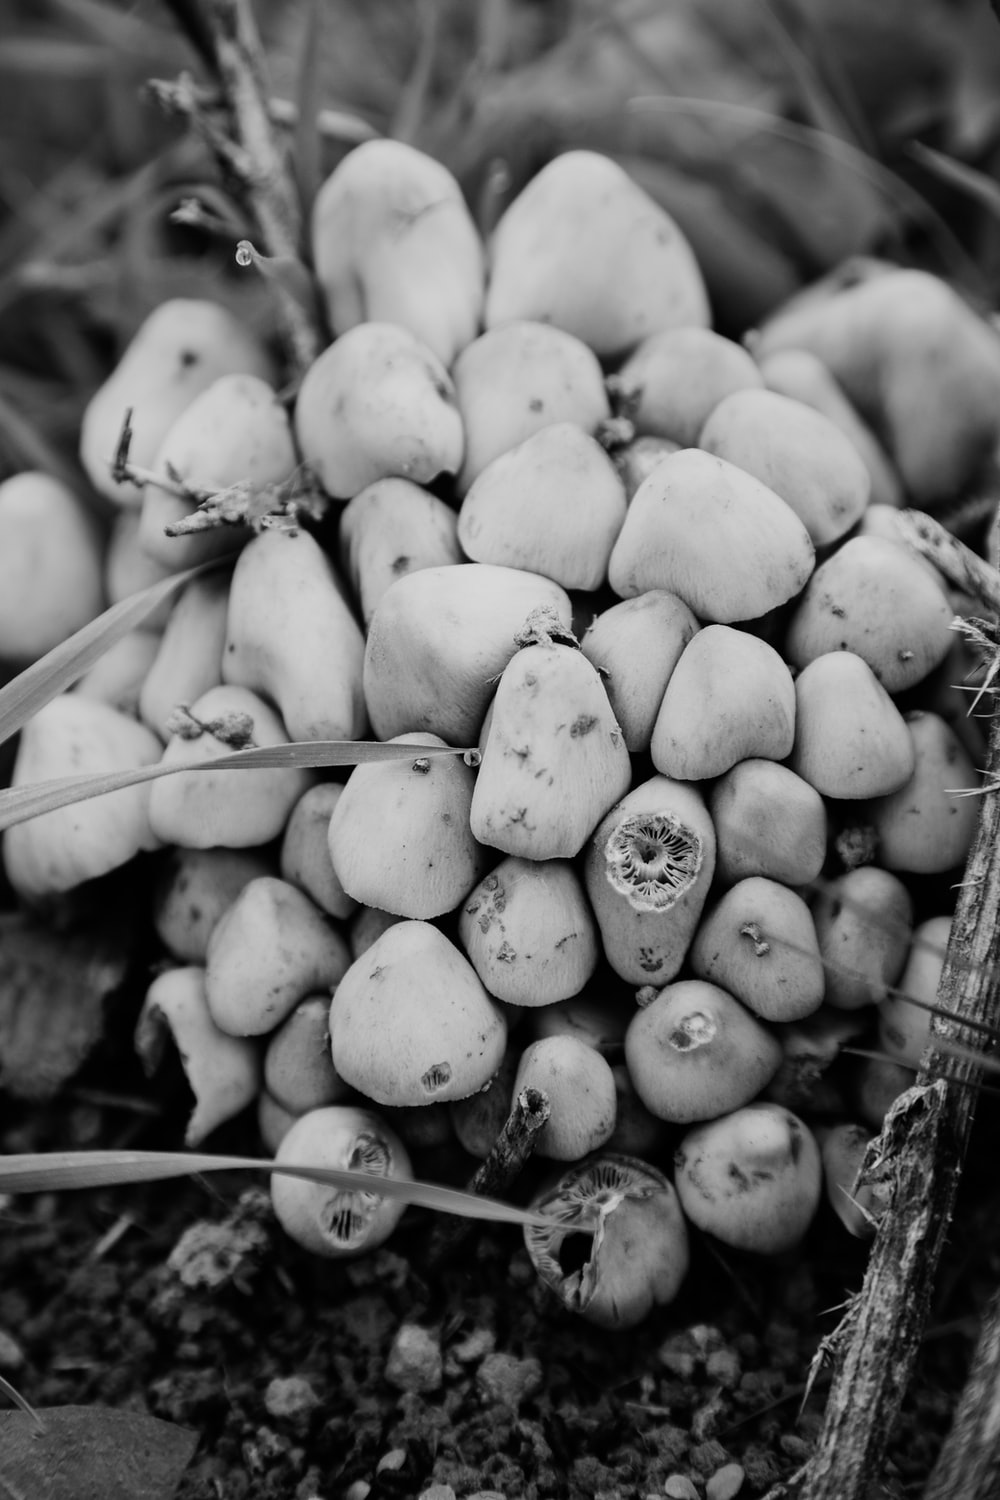 grayscale photo of round fruits